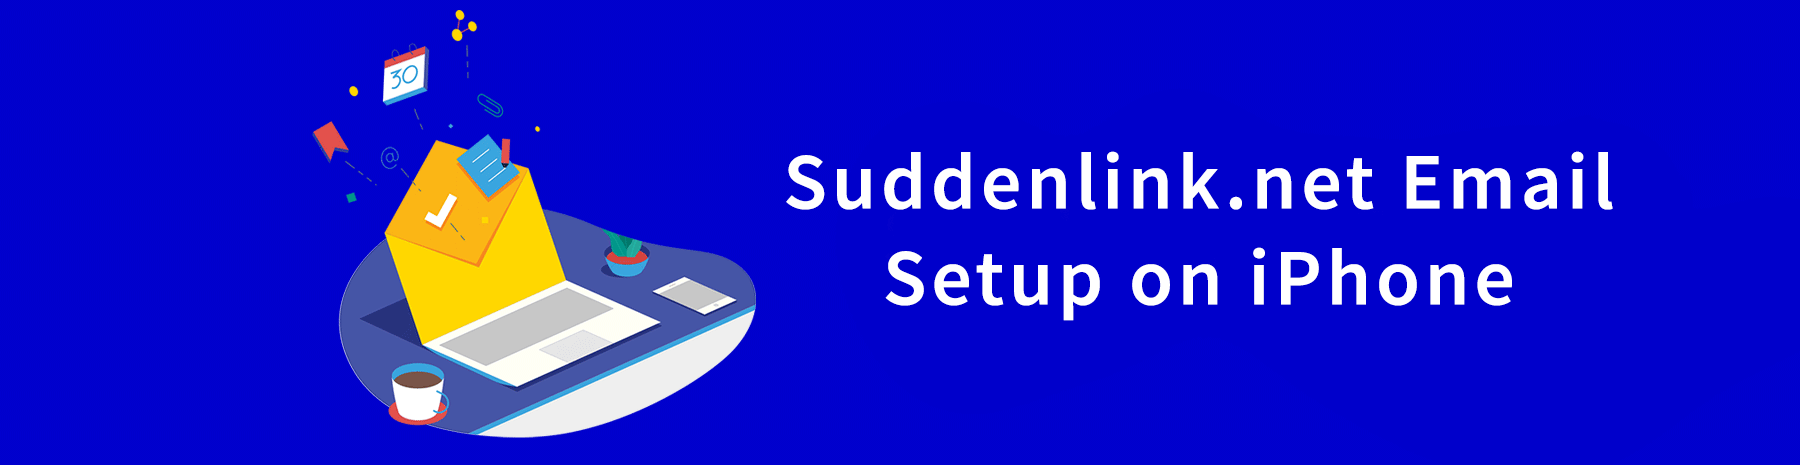 Setup Suddenlink Email on iPhone